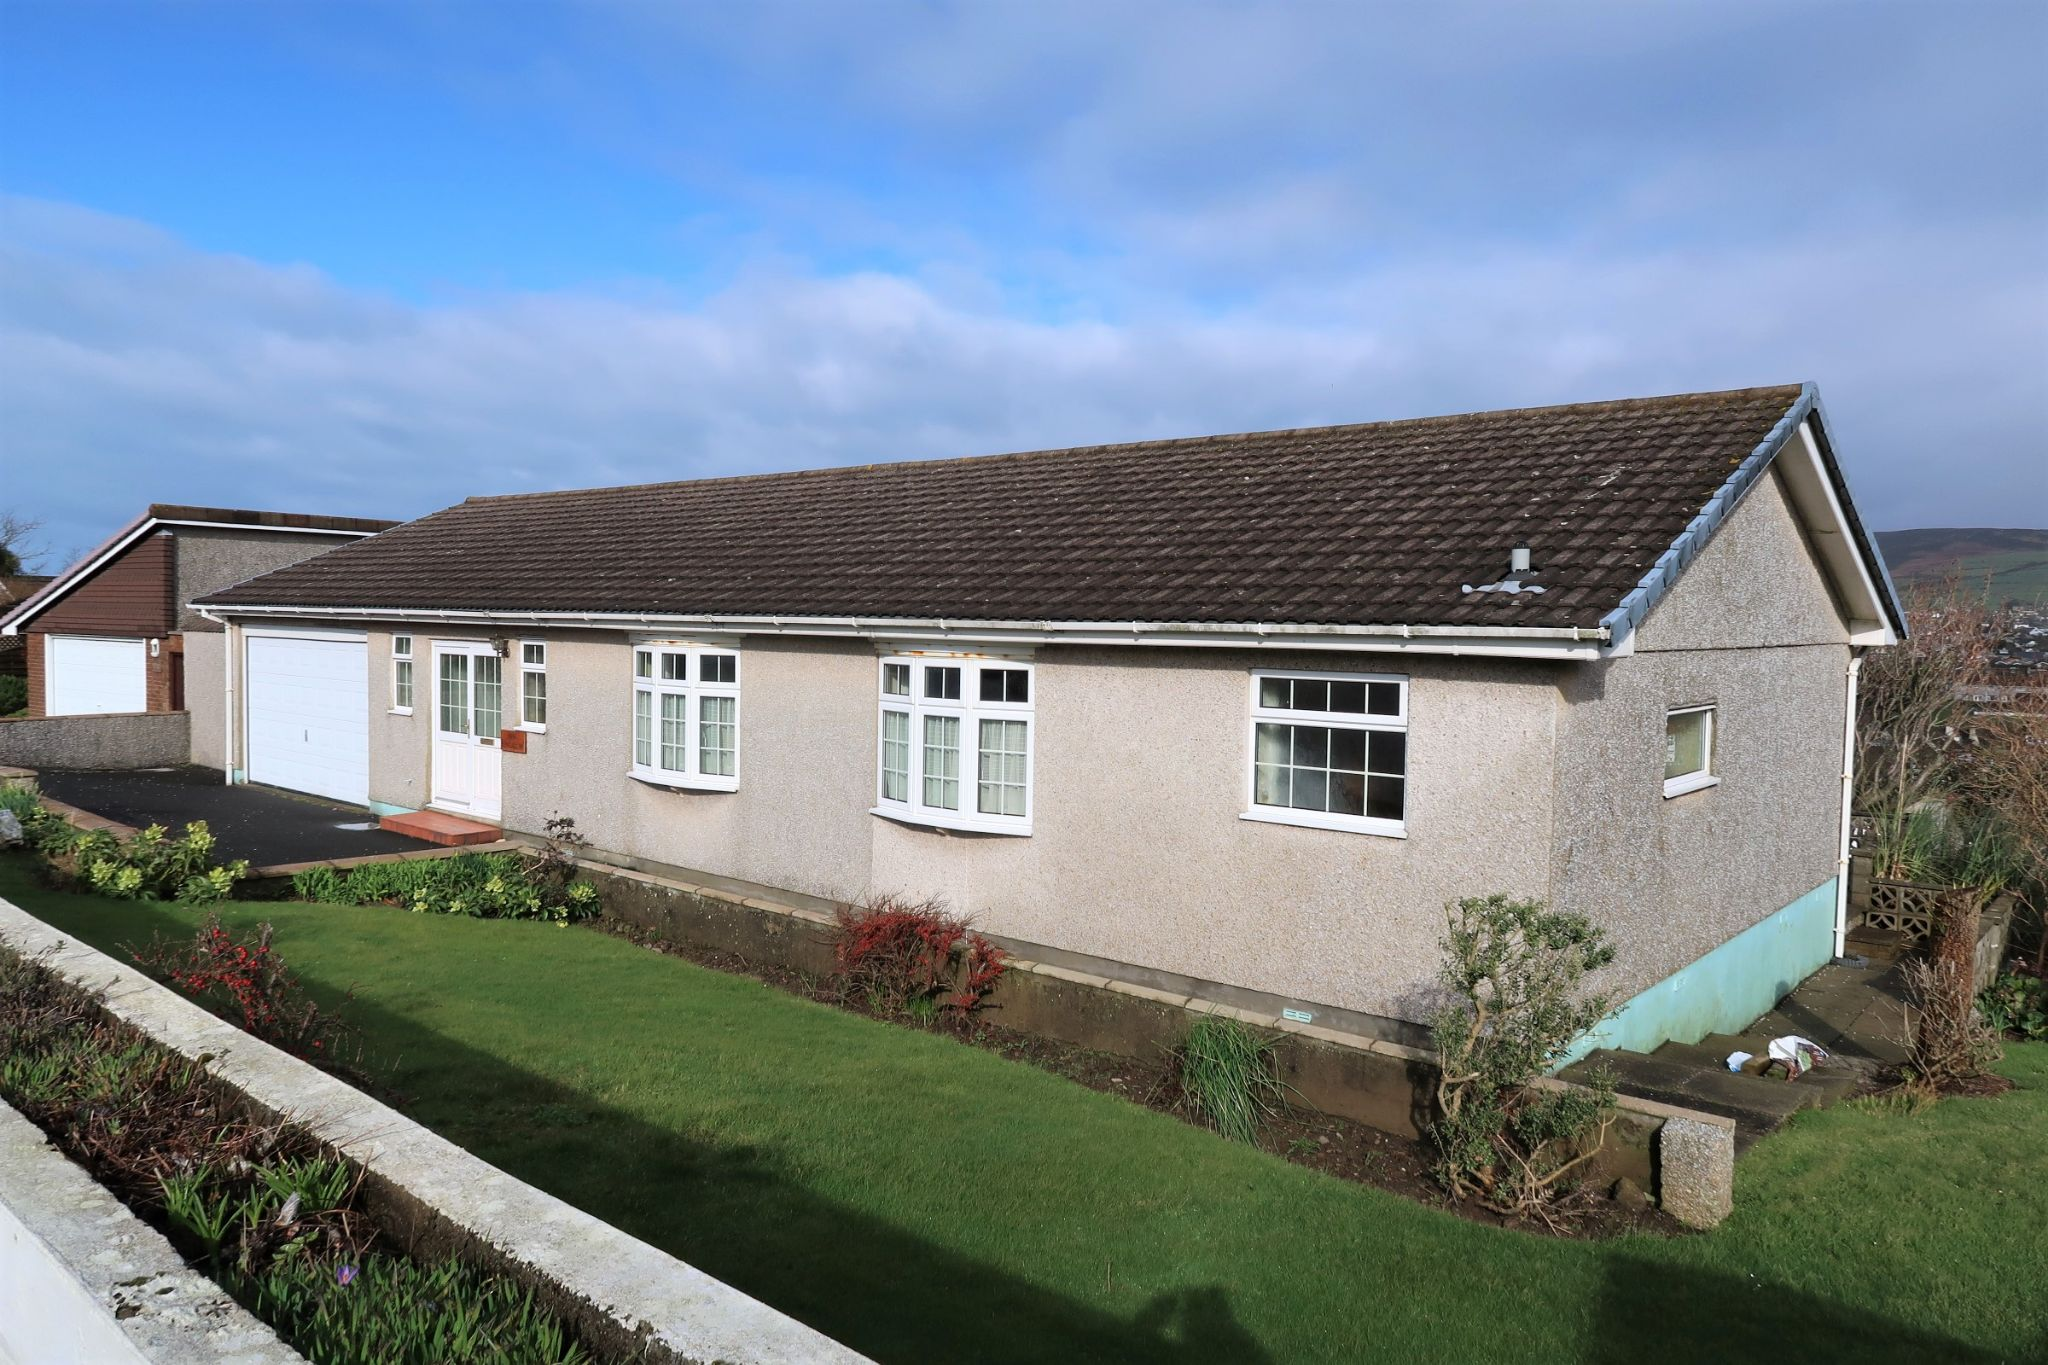 4 bedroom detached bungalow Sold in Port Erin - Photograph 8